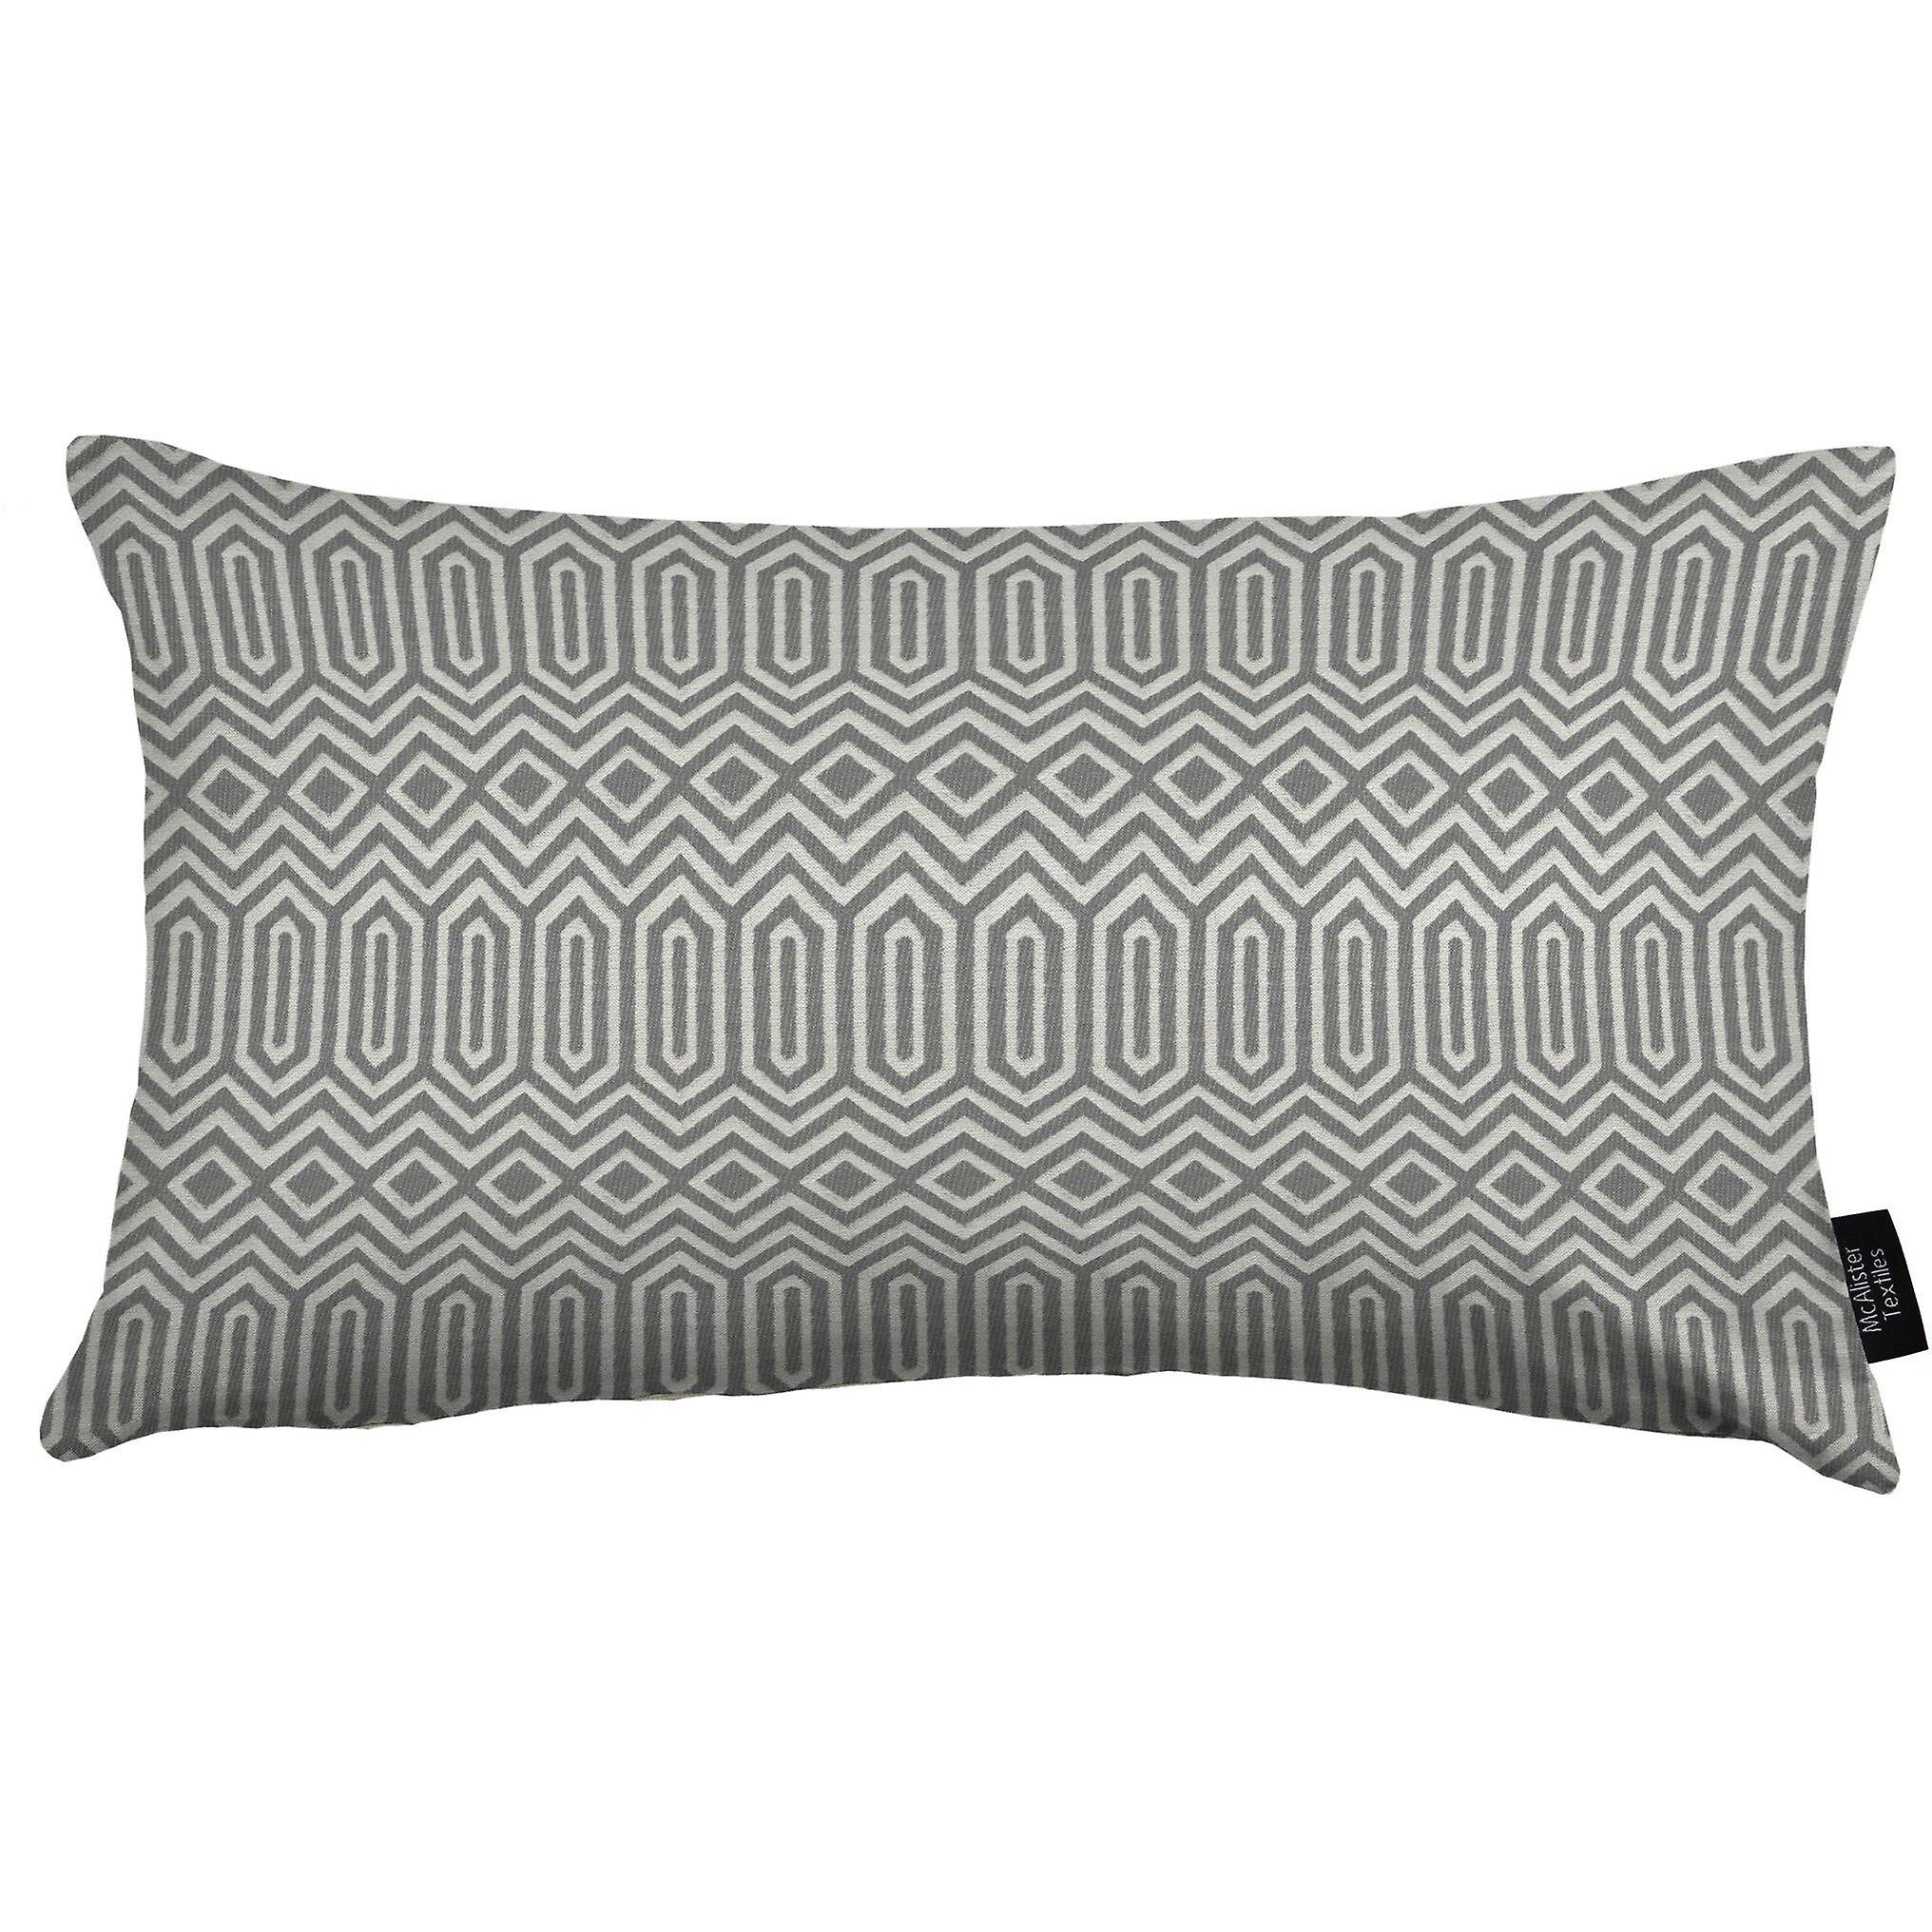 Mcalister textiles colorado geometric charcoal grey pillow